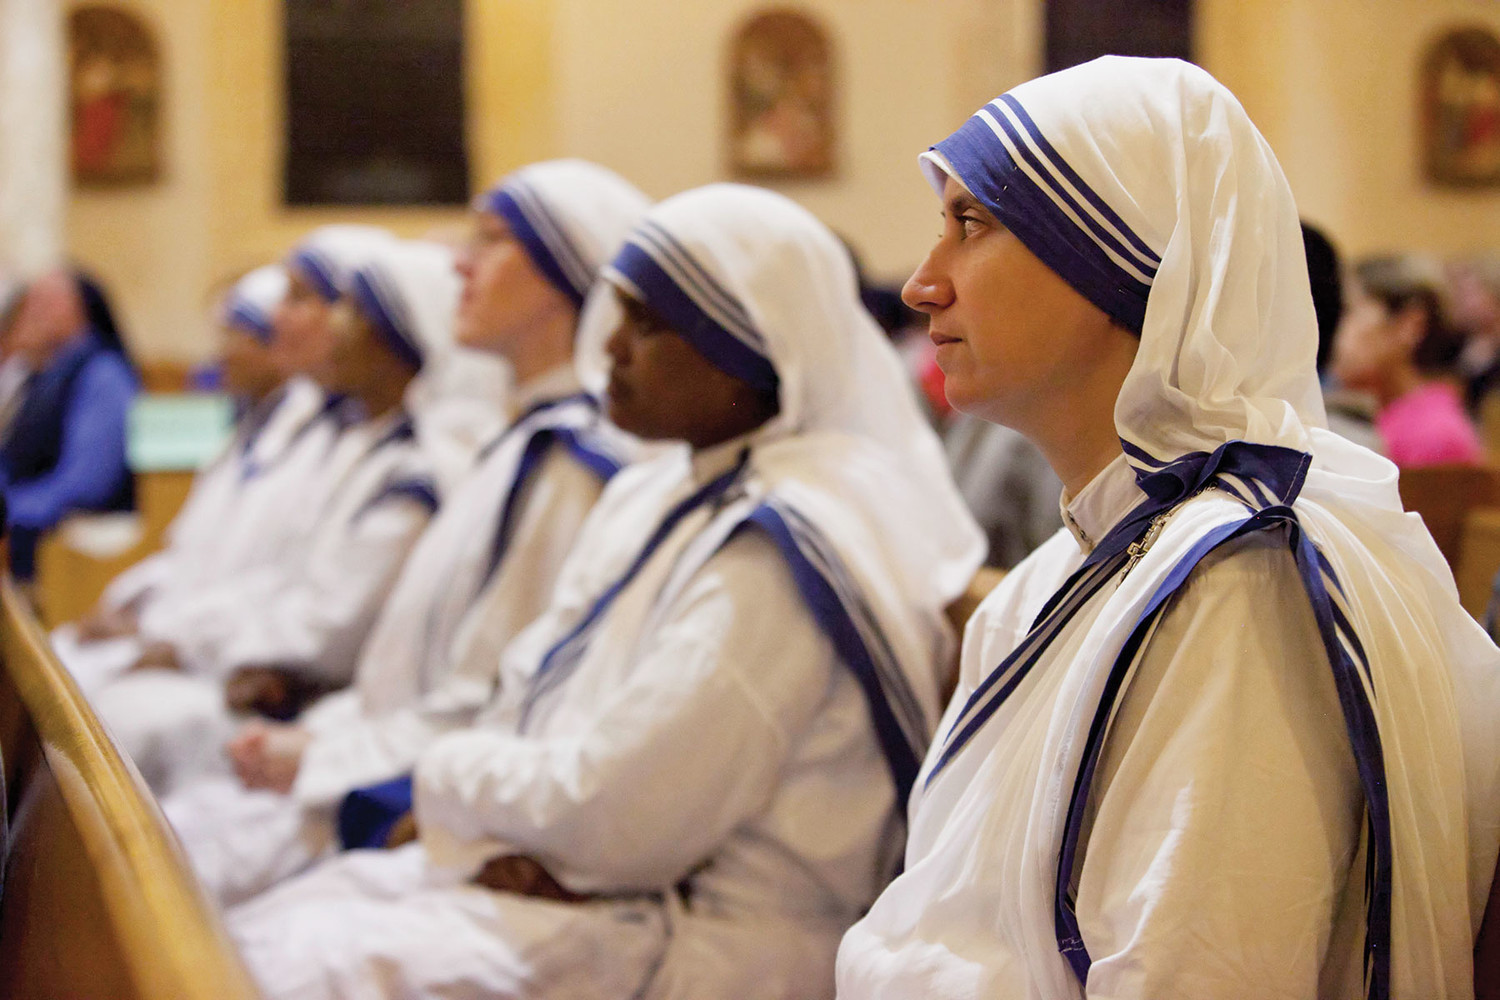 The religious congregation founded by St. Mother Teresa in 1950, attended the Unity Mass at St. Francis of Assisi.